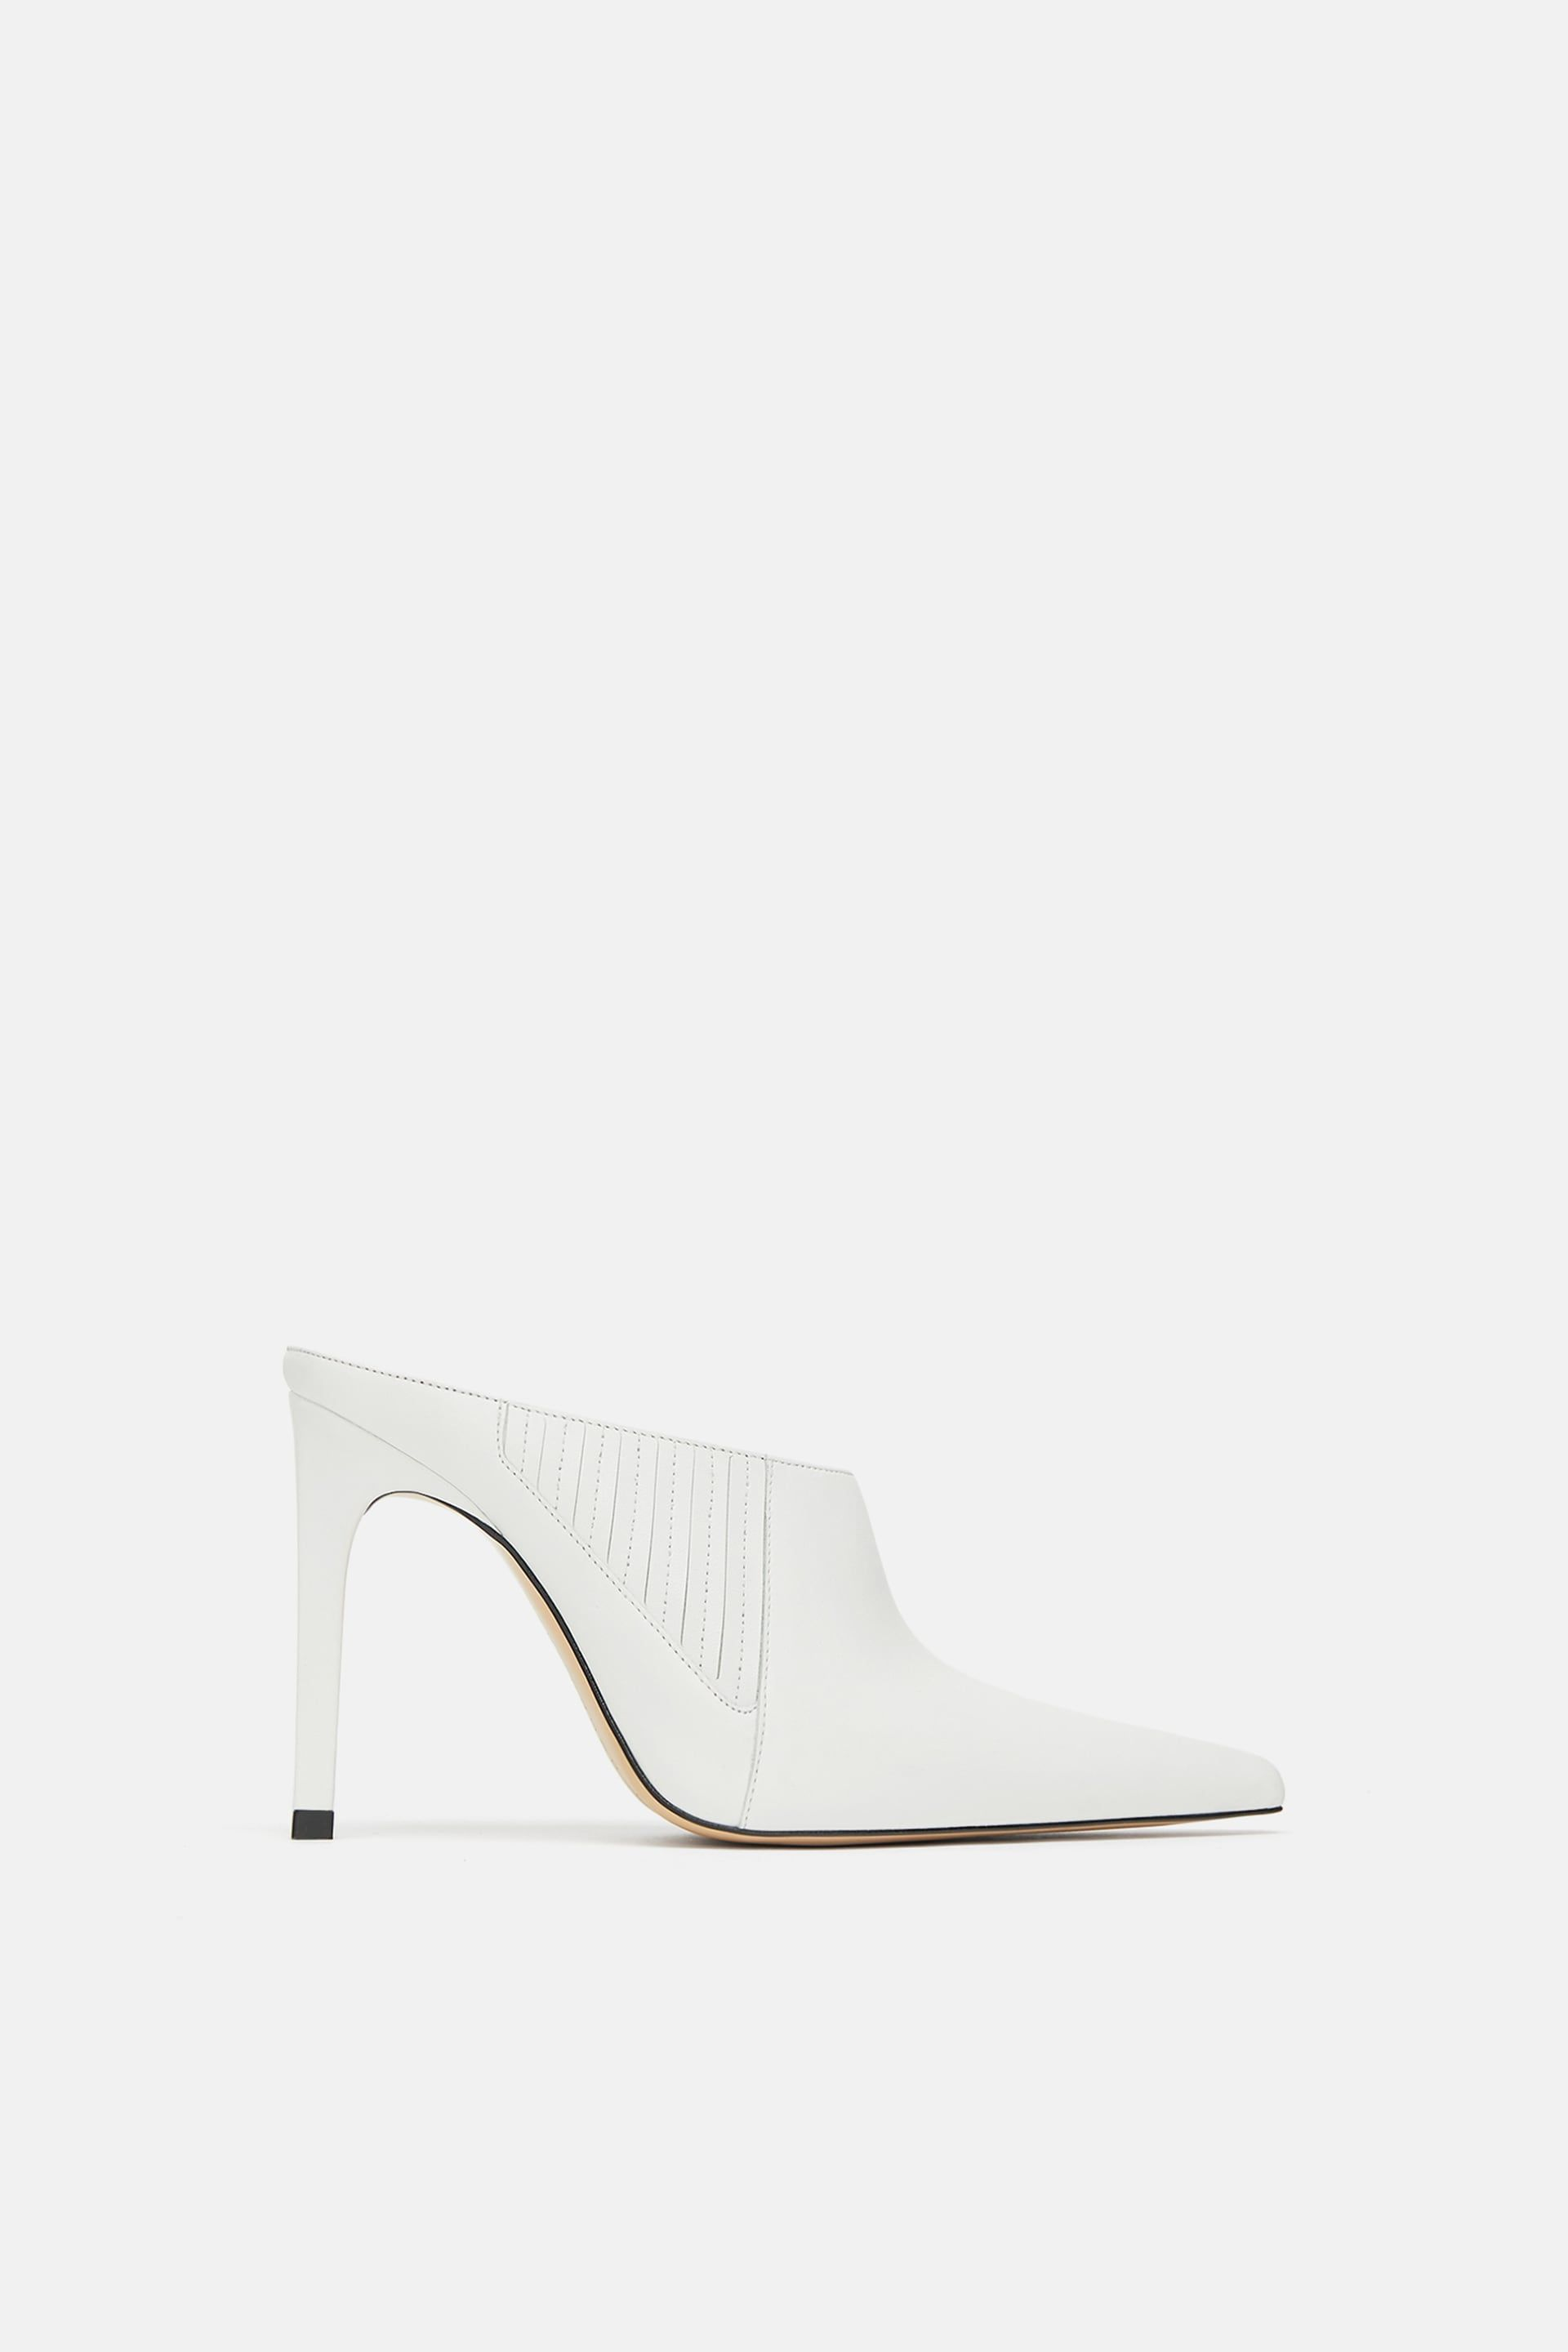 Image 2 Of Leather Heeled Mules From Zara Heeled Mules Heels Leather High Heels